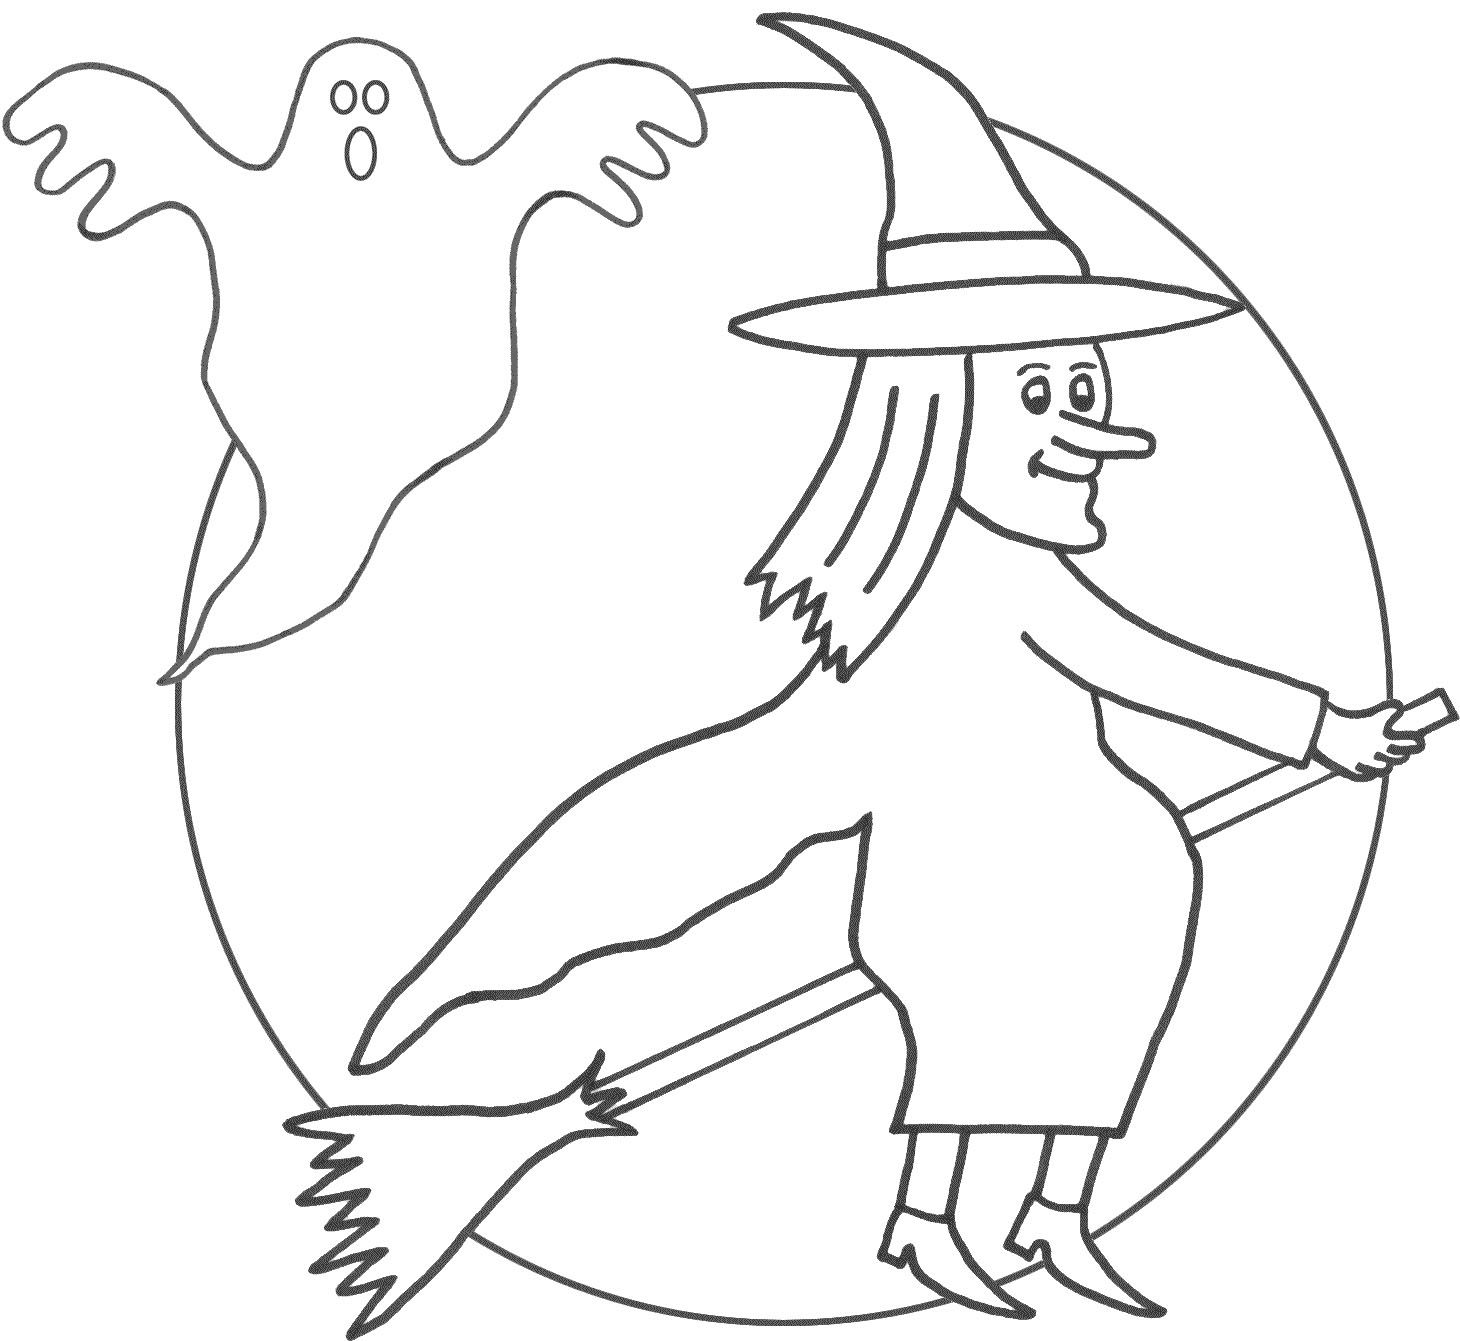 I Have Download Witch And Ghost Spooky Coloring Page Witch